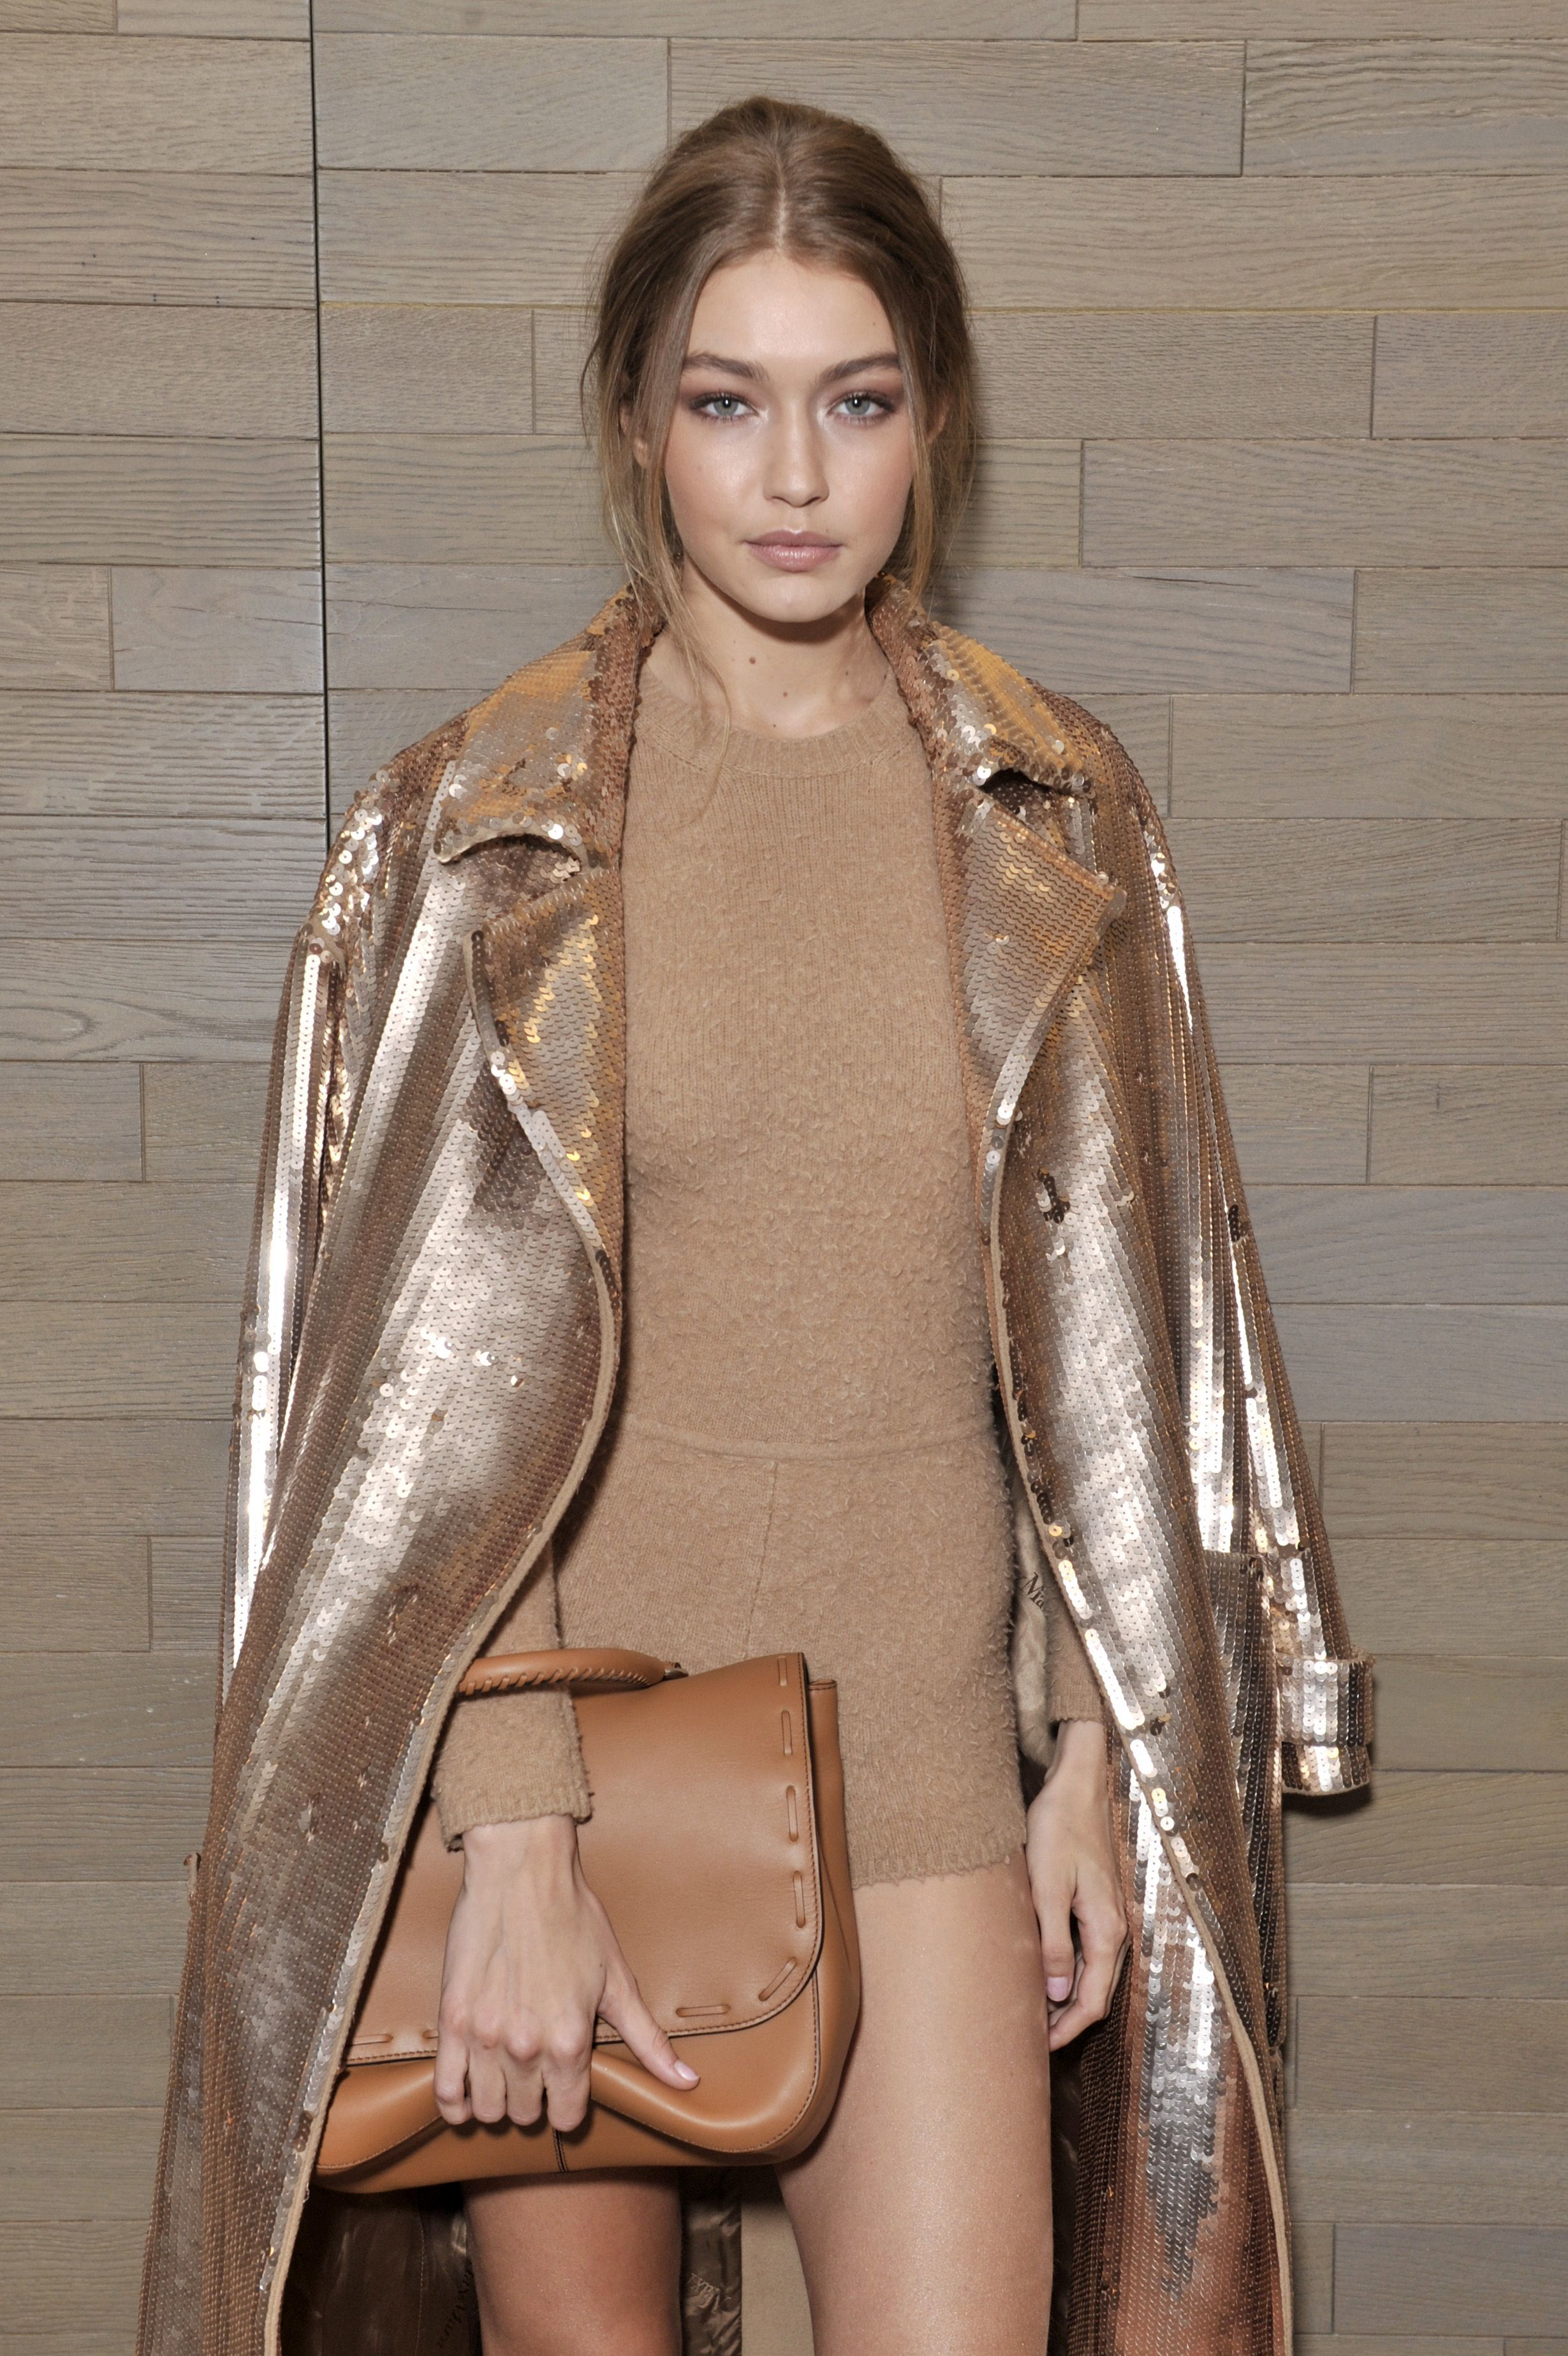 Gigi Hadid sounds off on fighting back during Milan attack